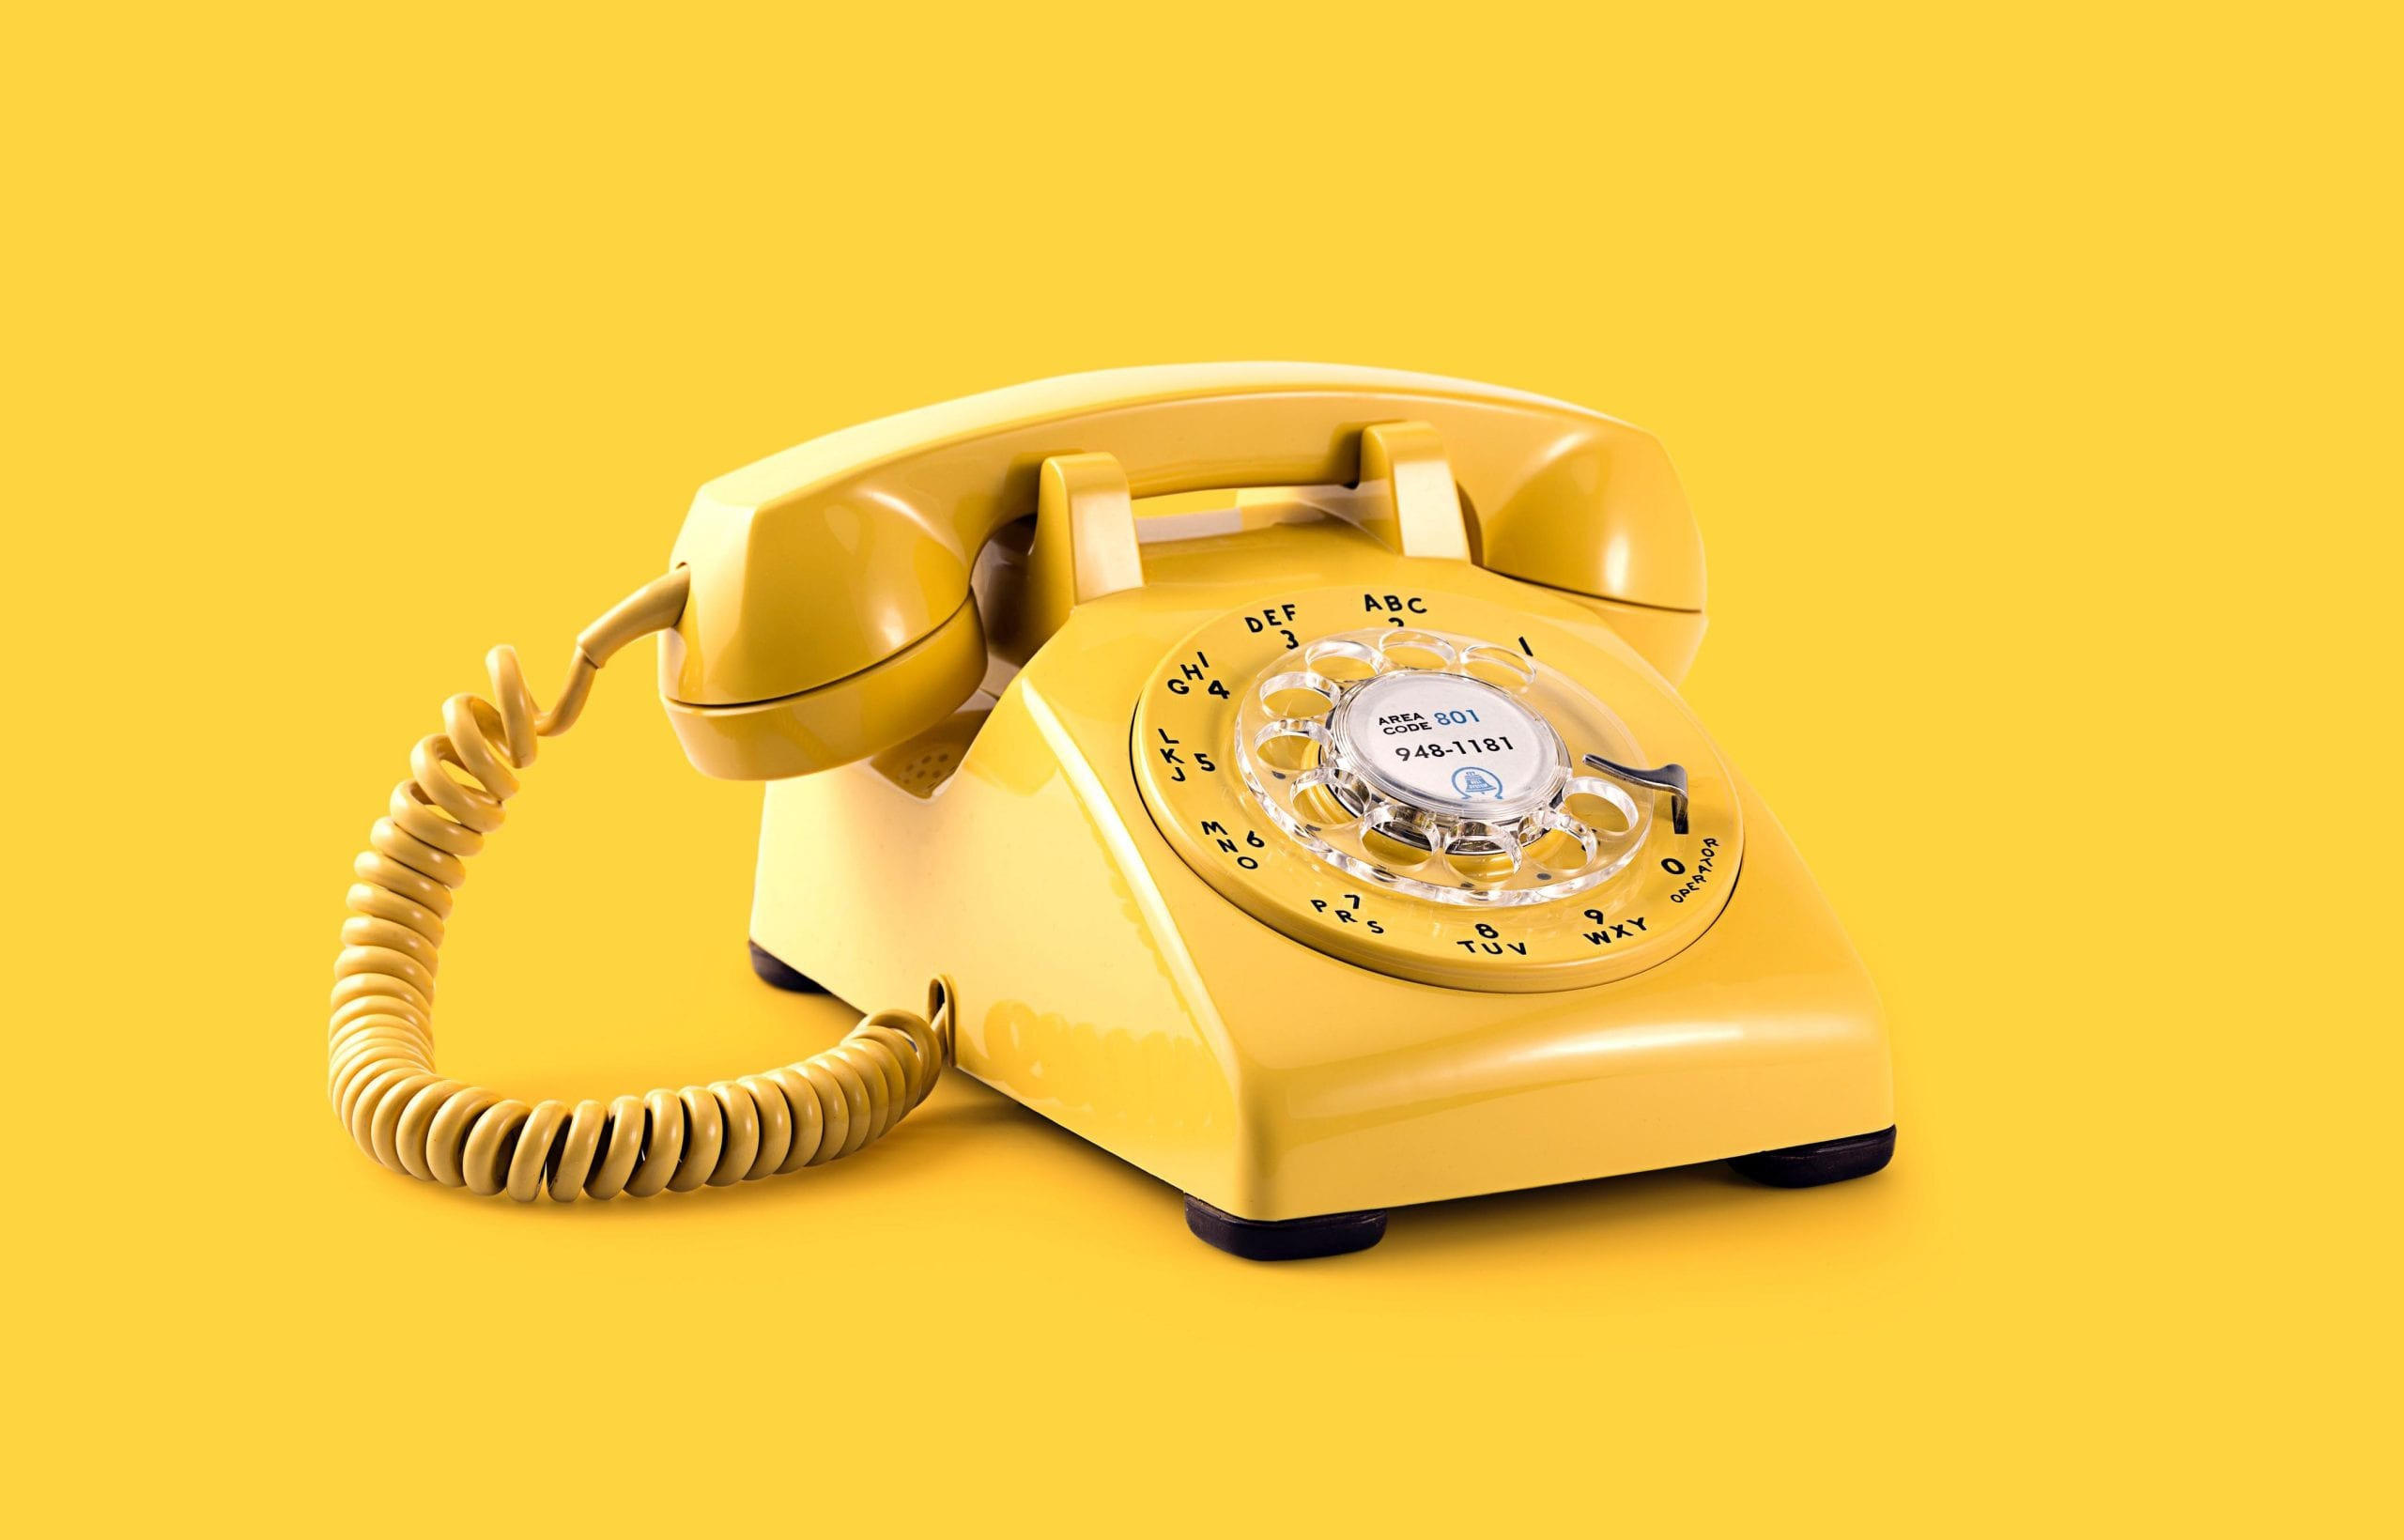 yellow phone on yellow background - sales call tips header